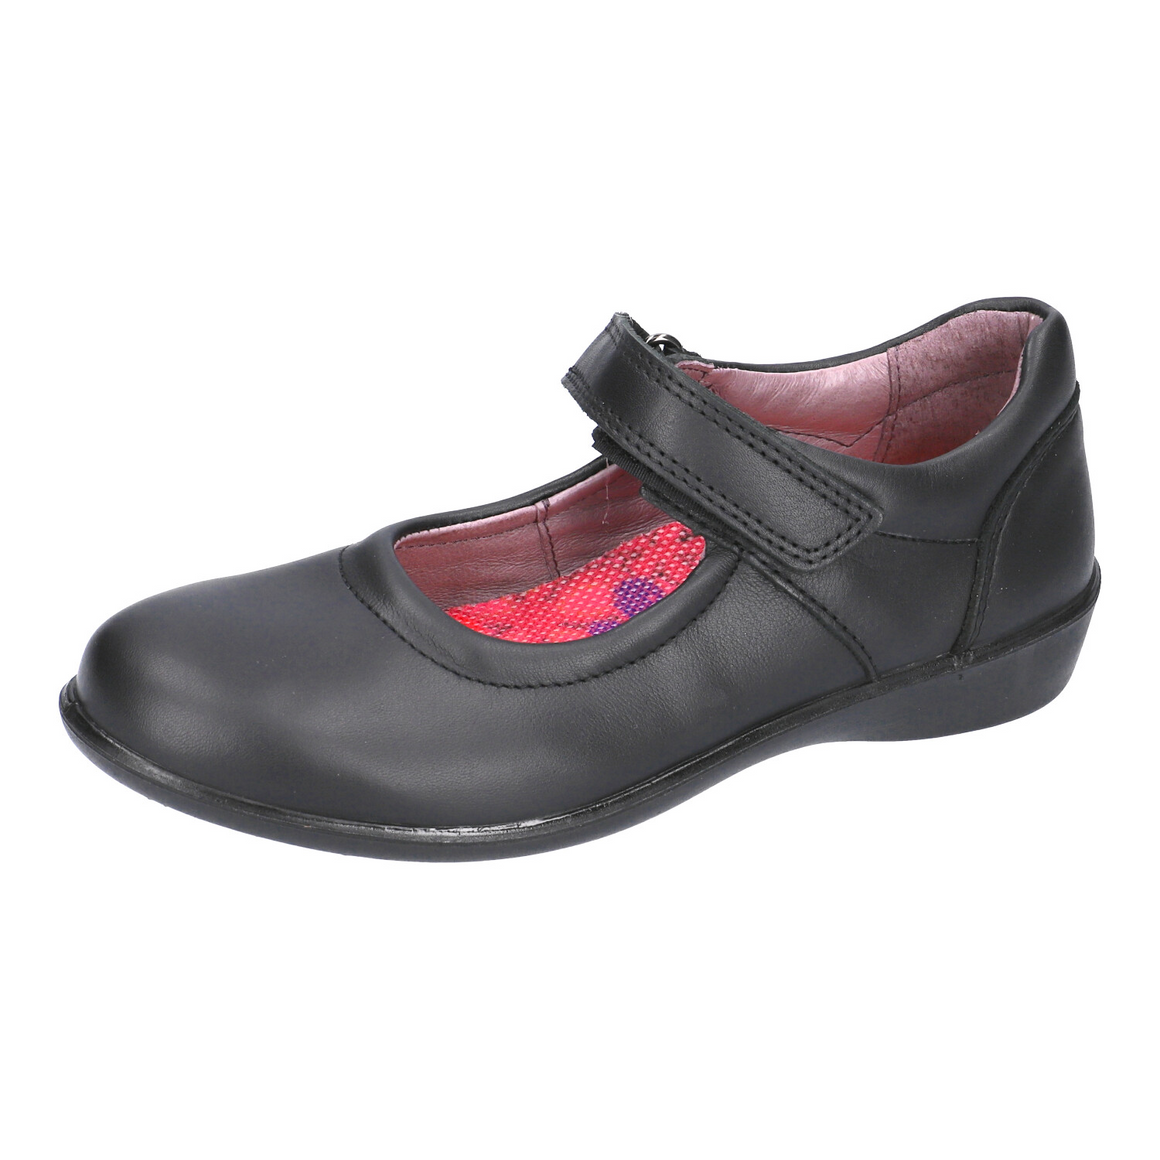 Beth School Shoes for Girls in Black